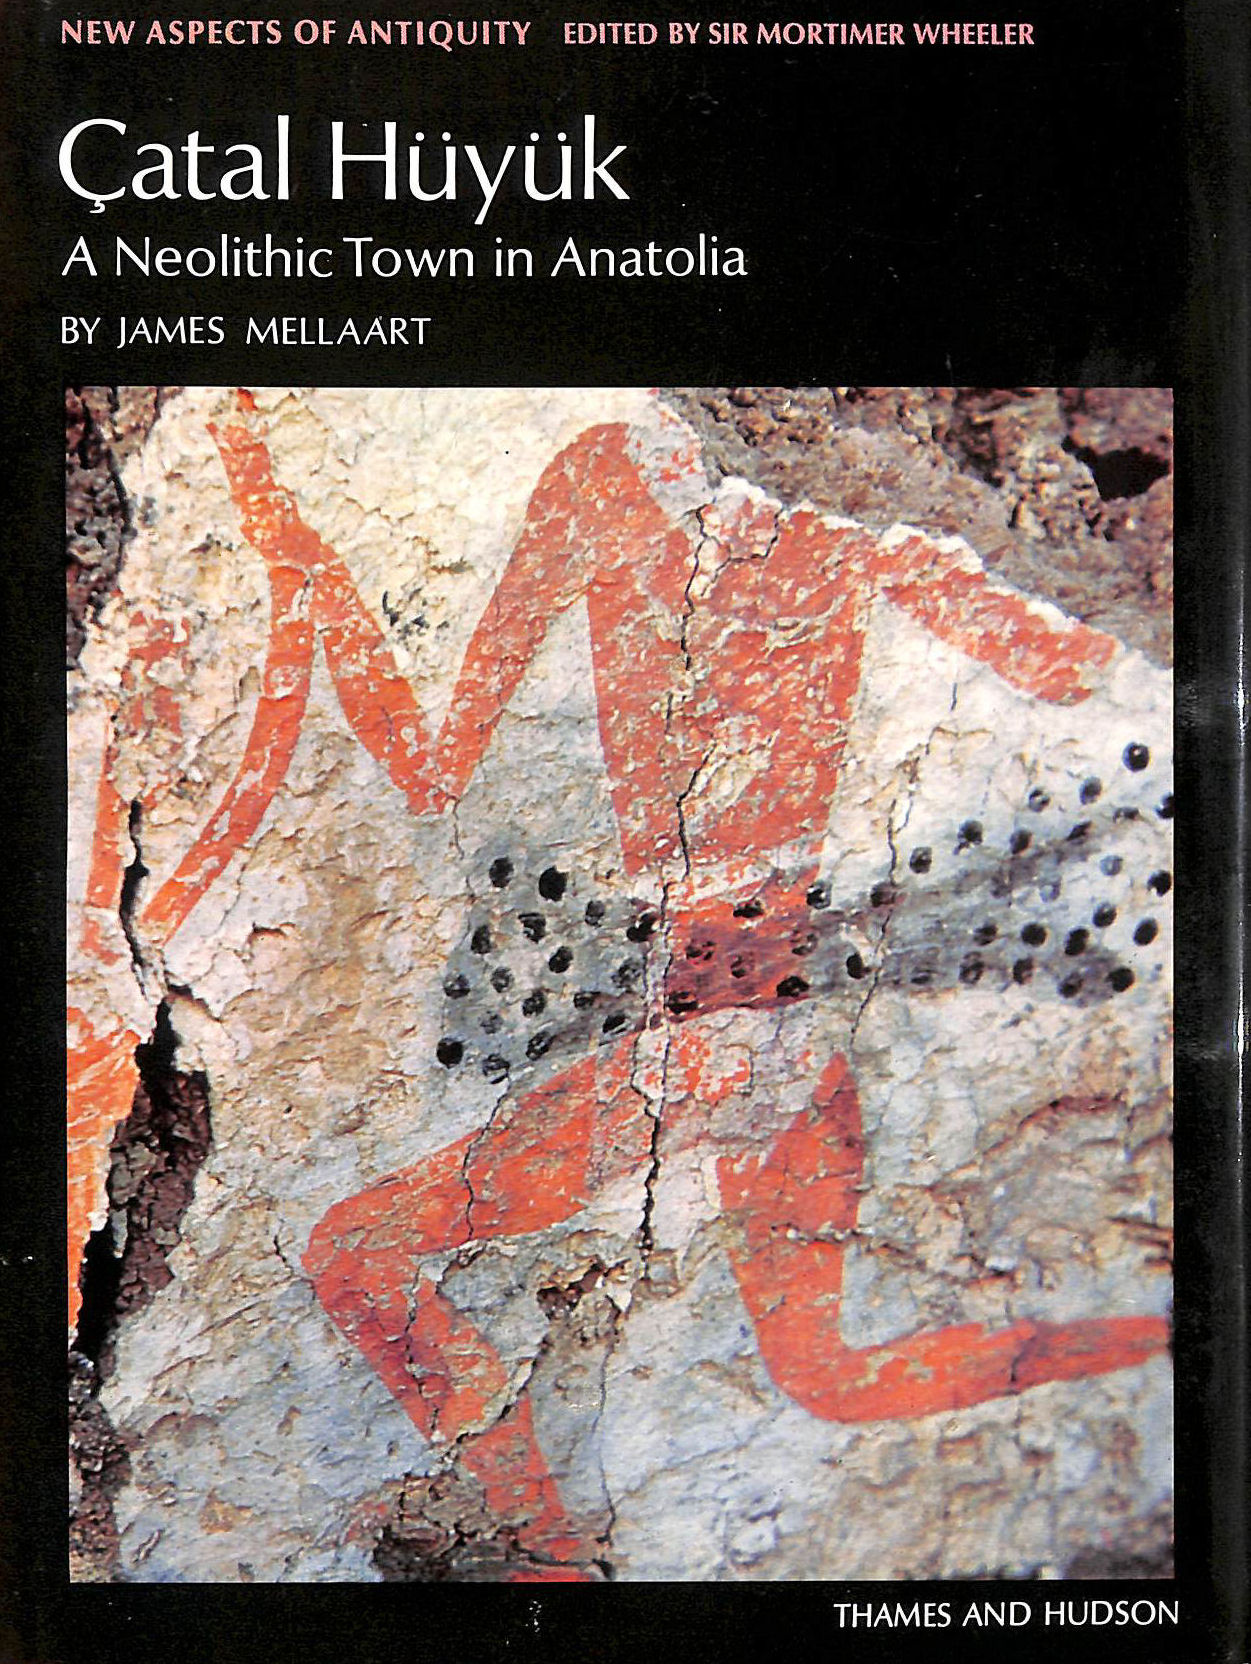 Image for Catal Huyuk: Neolithic Town in Anatolia (New Aspects of Antiquity)